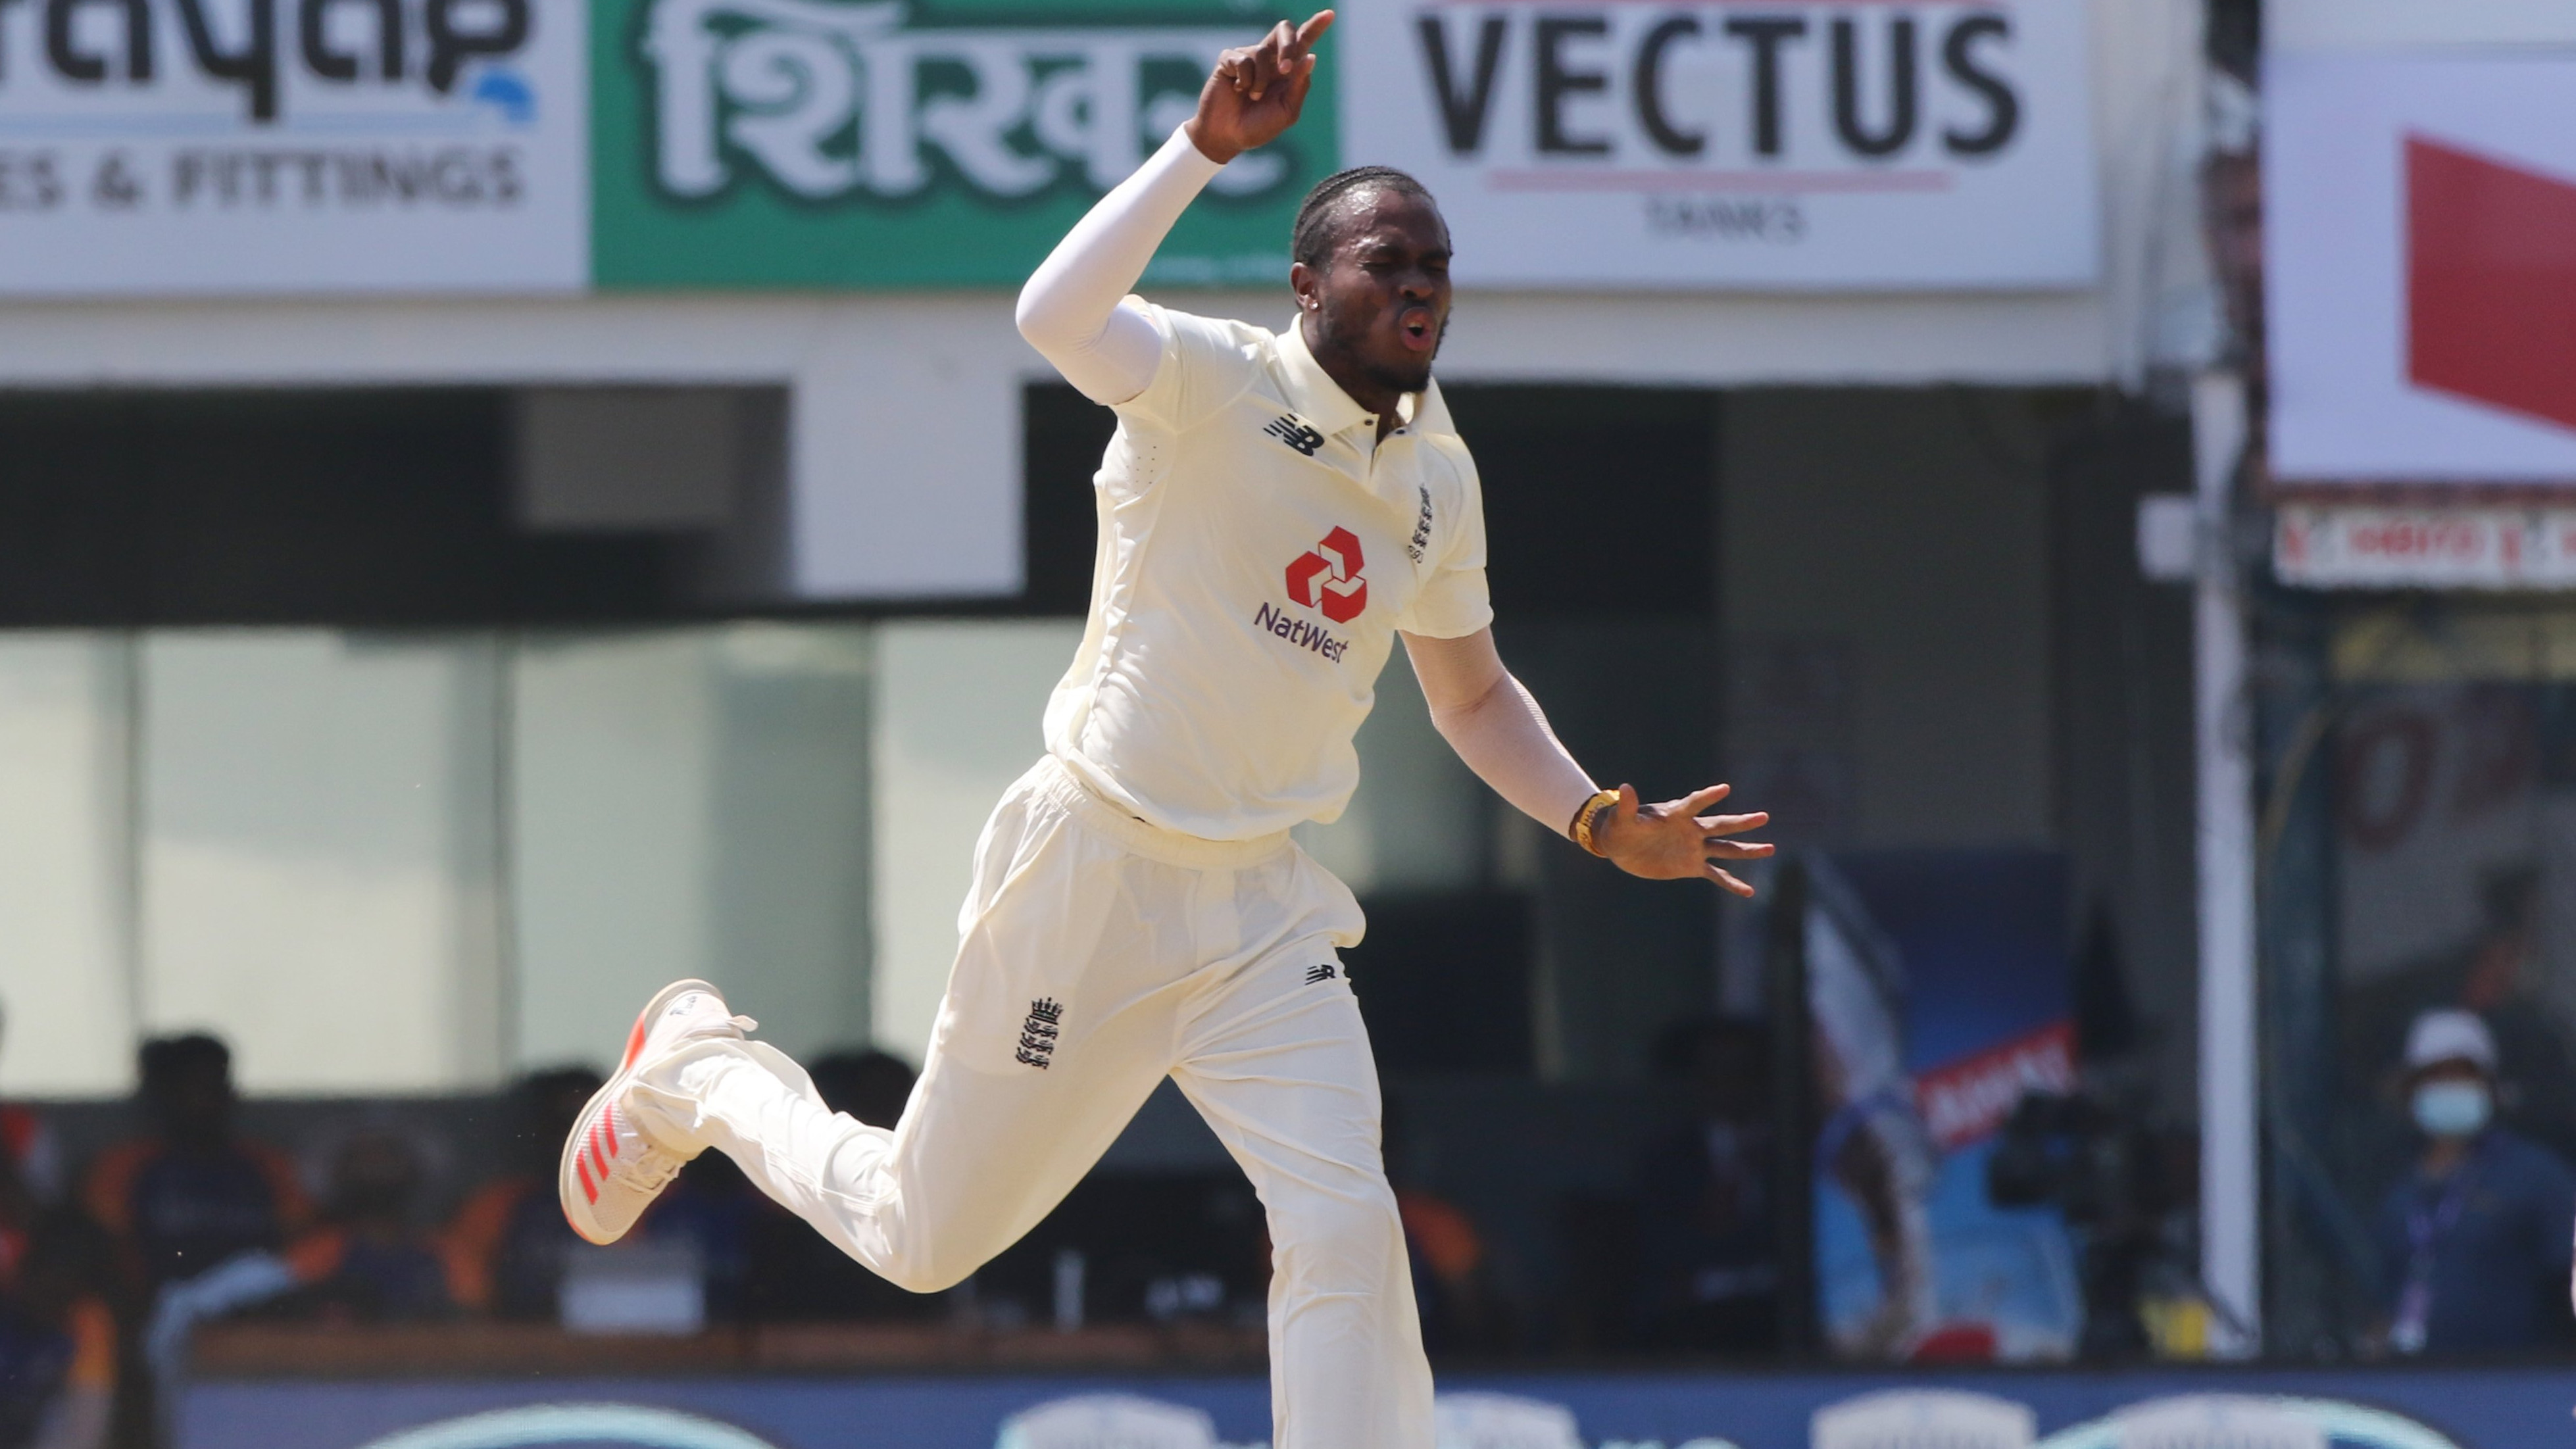 IND v ENG 2021: Jofra Archer ruled out of the final Test due to persistent elbow injury